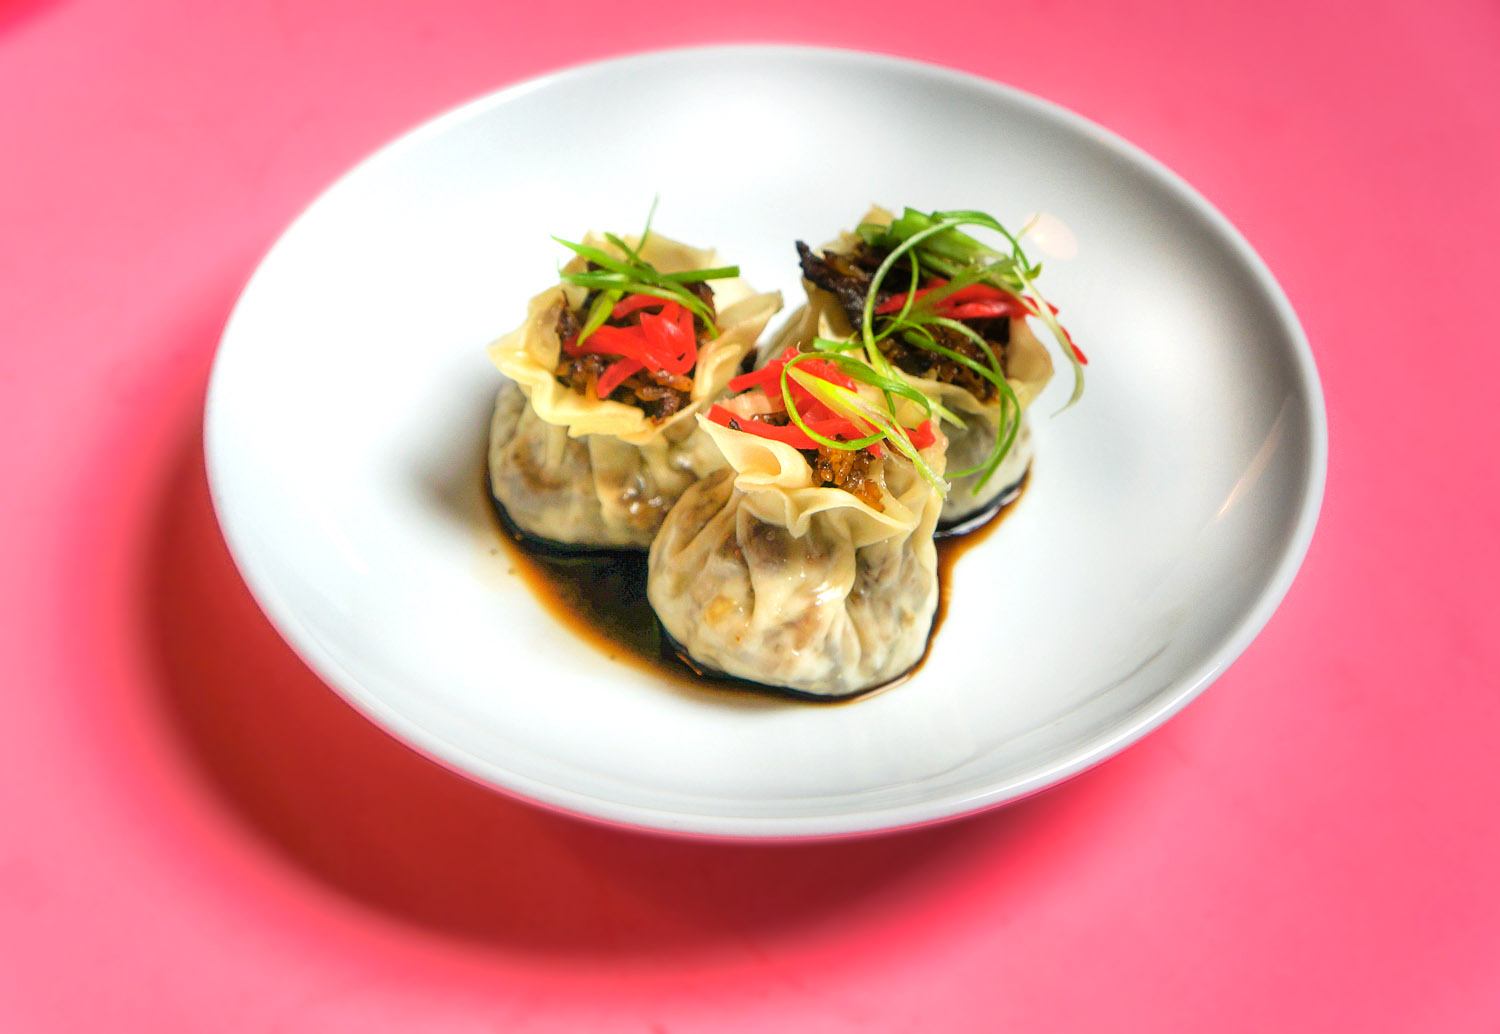 Shumai on a white plate with vegetables on top